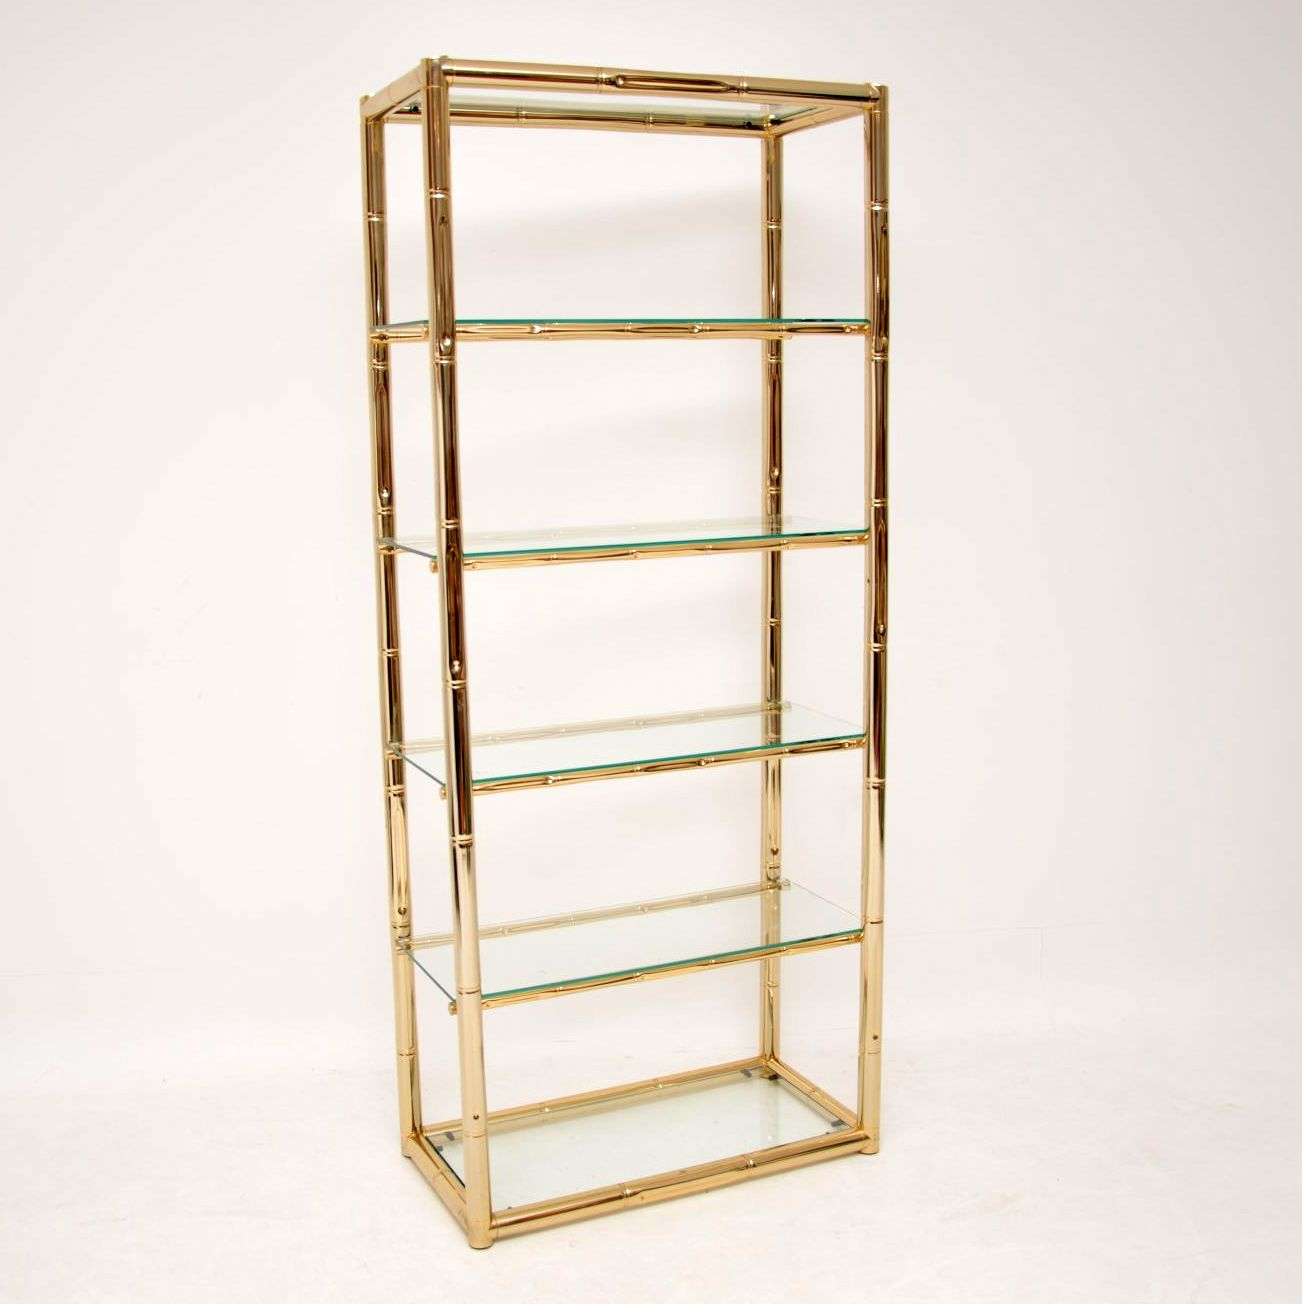 1970's Vintage Italian Brass & Glass Cabinet / Bookcase